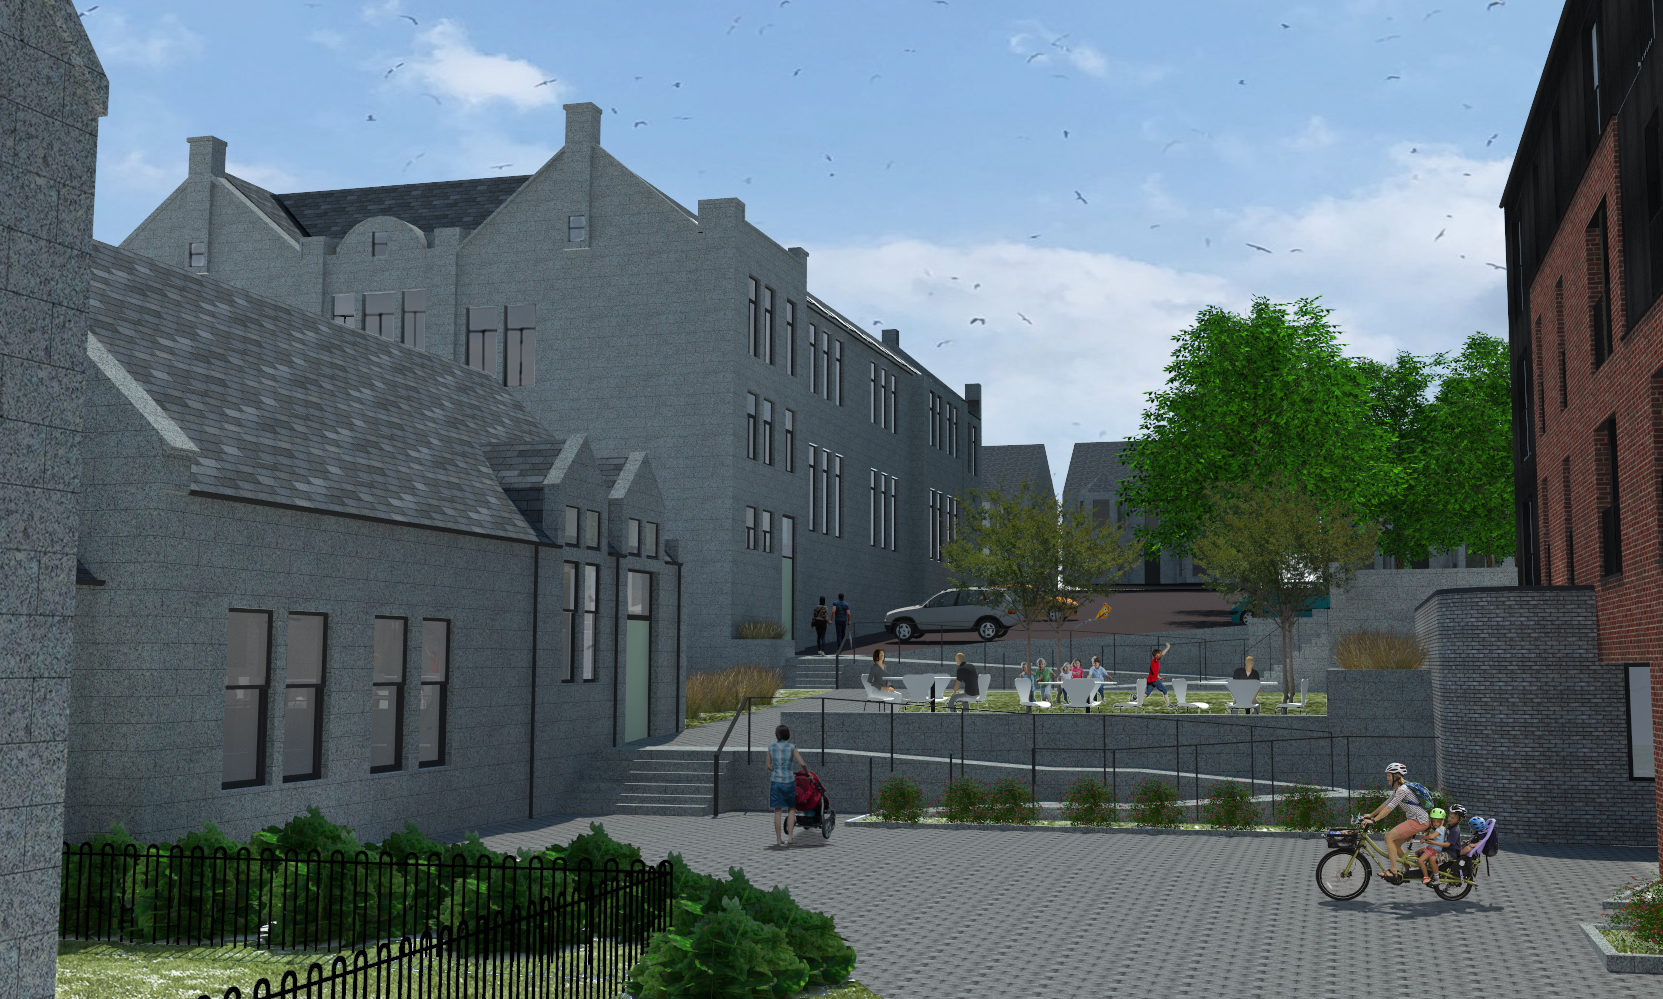 An artist's impression of the new affordable housing development at the former Victoria Road School in Torry, Aberdeen.